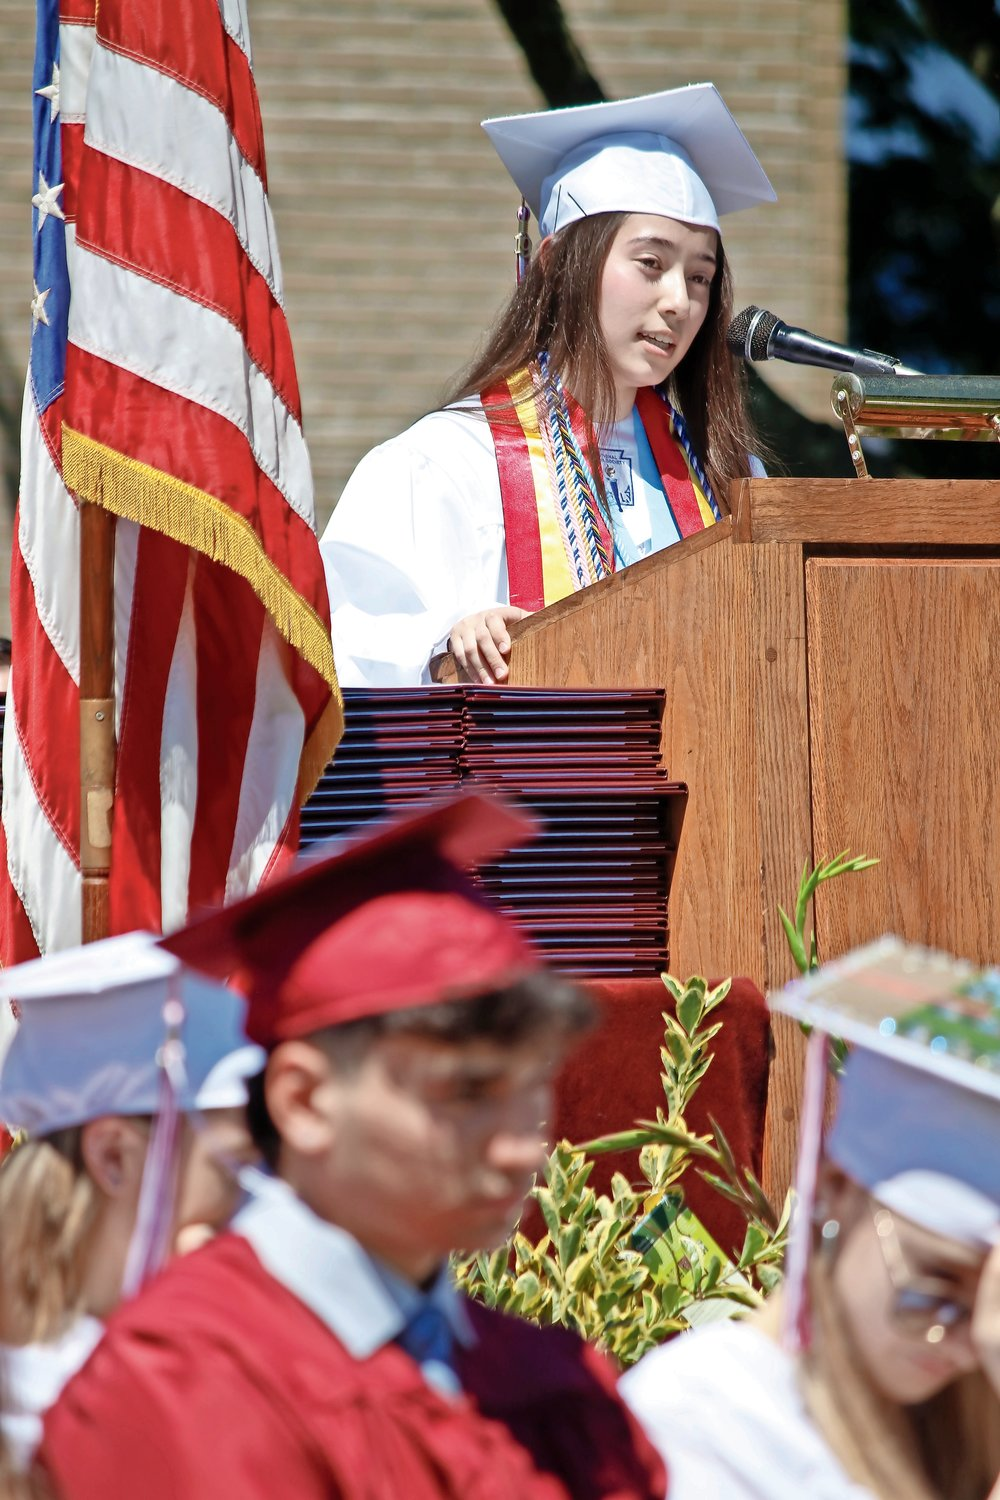 Salutatorian Hanah Leventhal, adorned in multiple honor cords, addressed her fellow graduates.